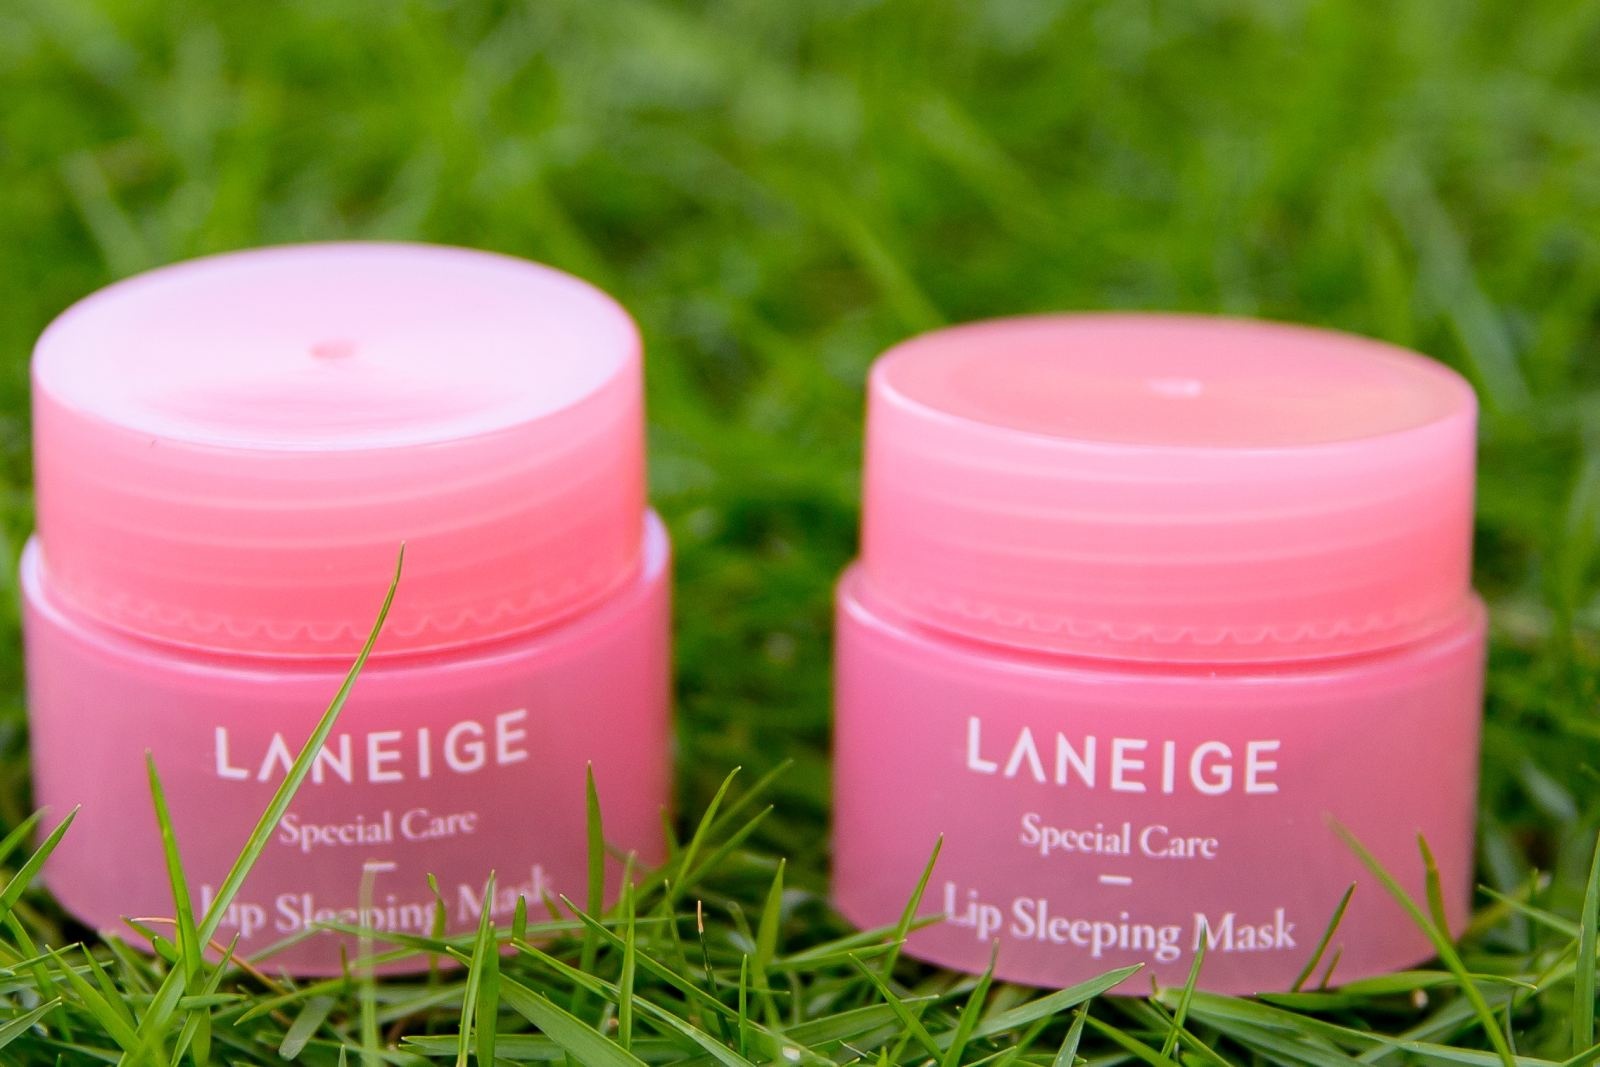 [Mặt nạ ngủ Laneige] Review chi tiết mặt nạ ngủ môi Laneige mới nhất (2018)